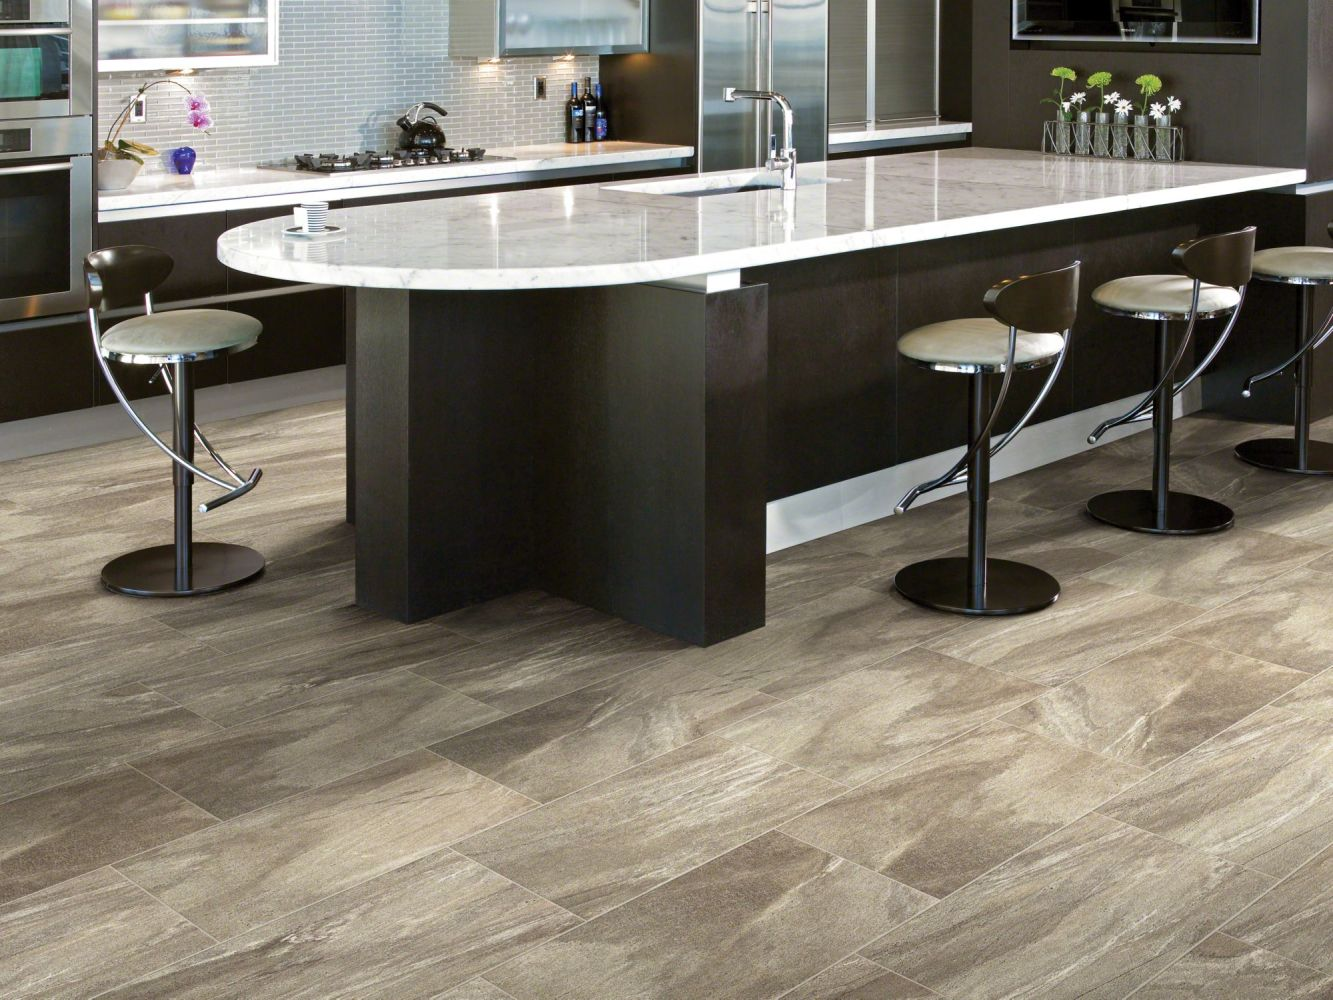 Shaw Floors Vinyl Residential Journey Tile Bora 00713_0494V